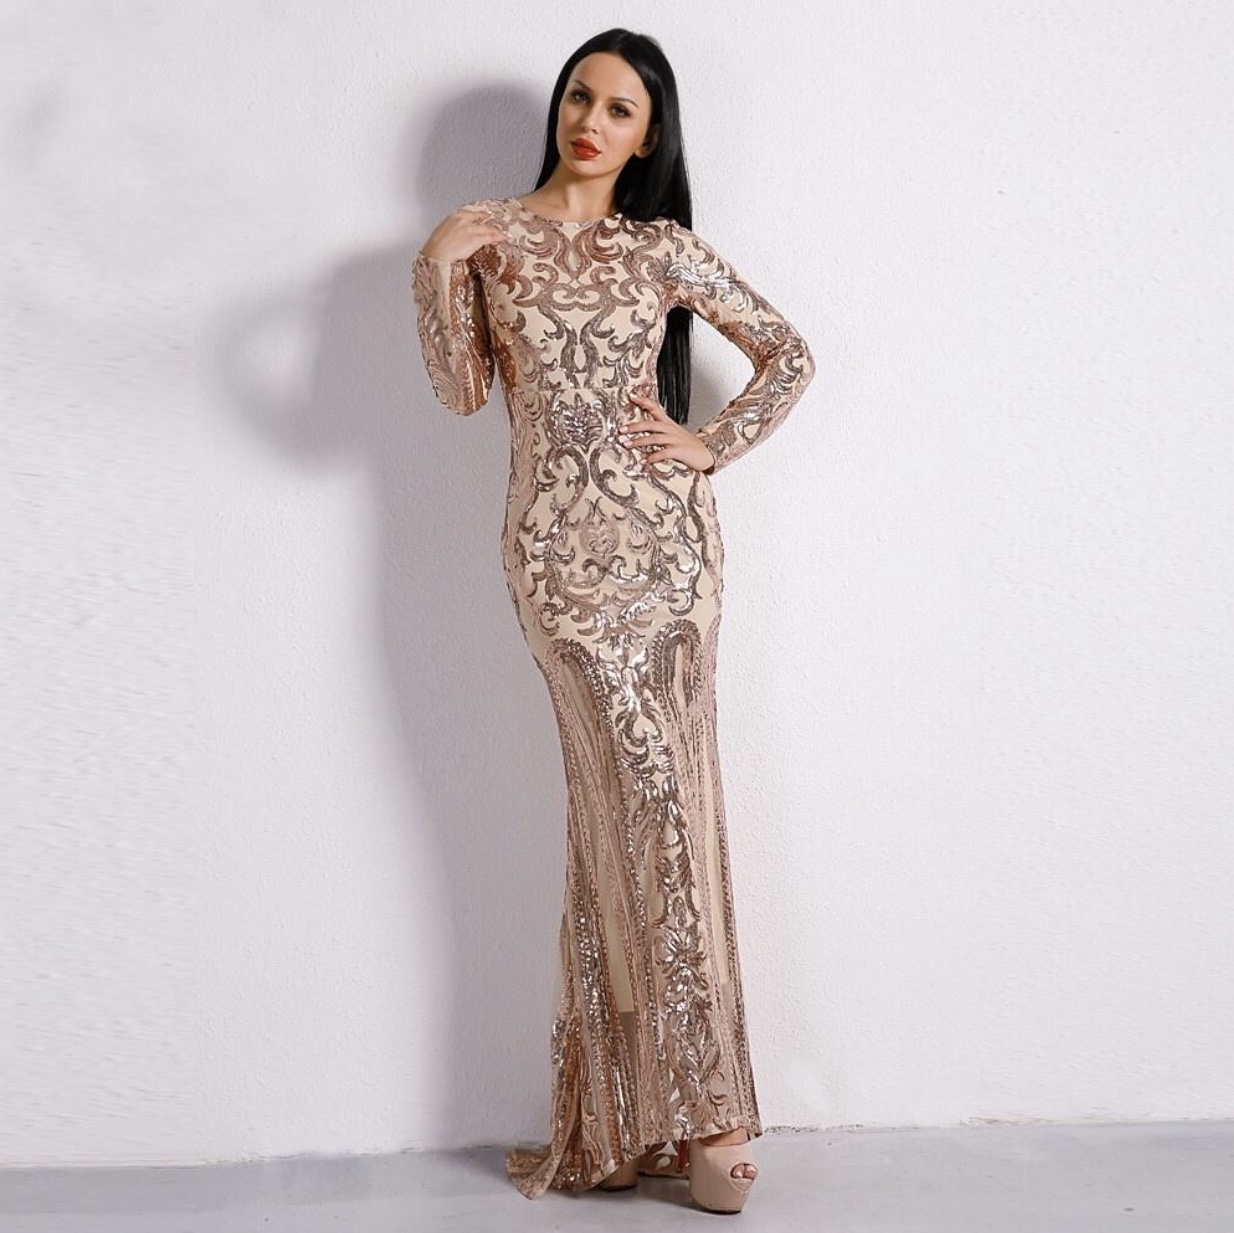 rose+gold+maxi+dress+with+sleeves